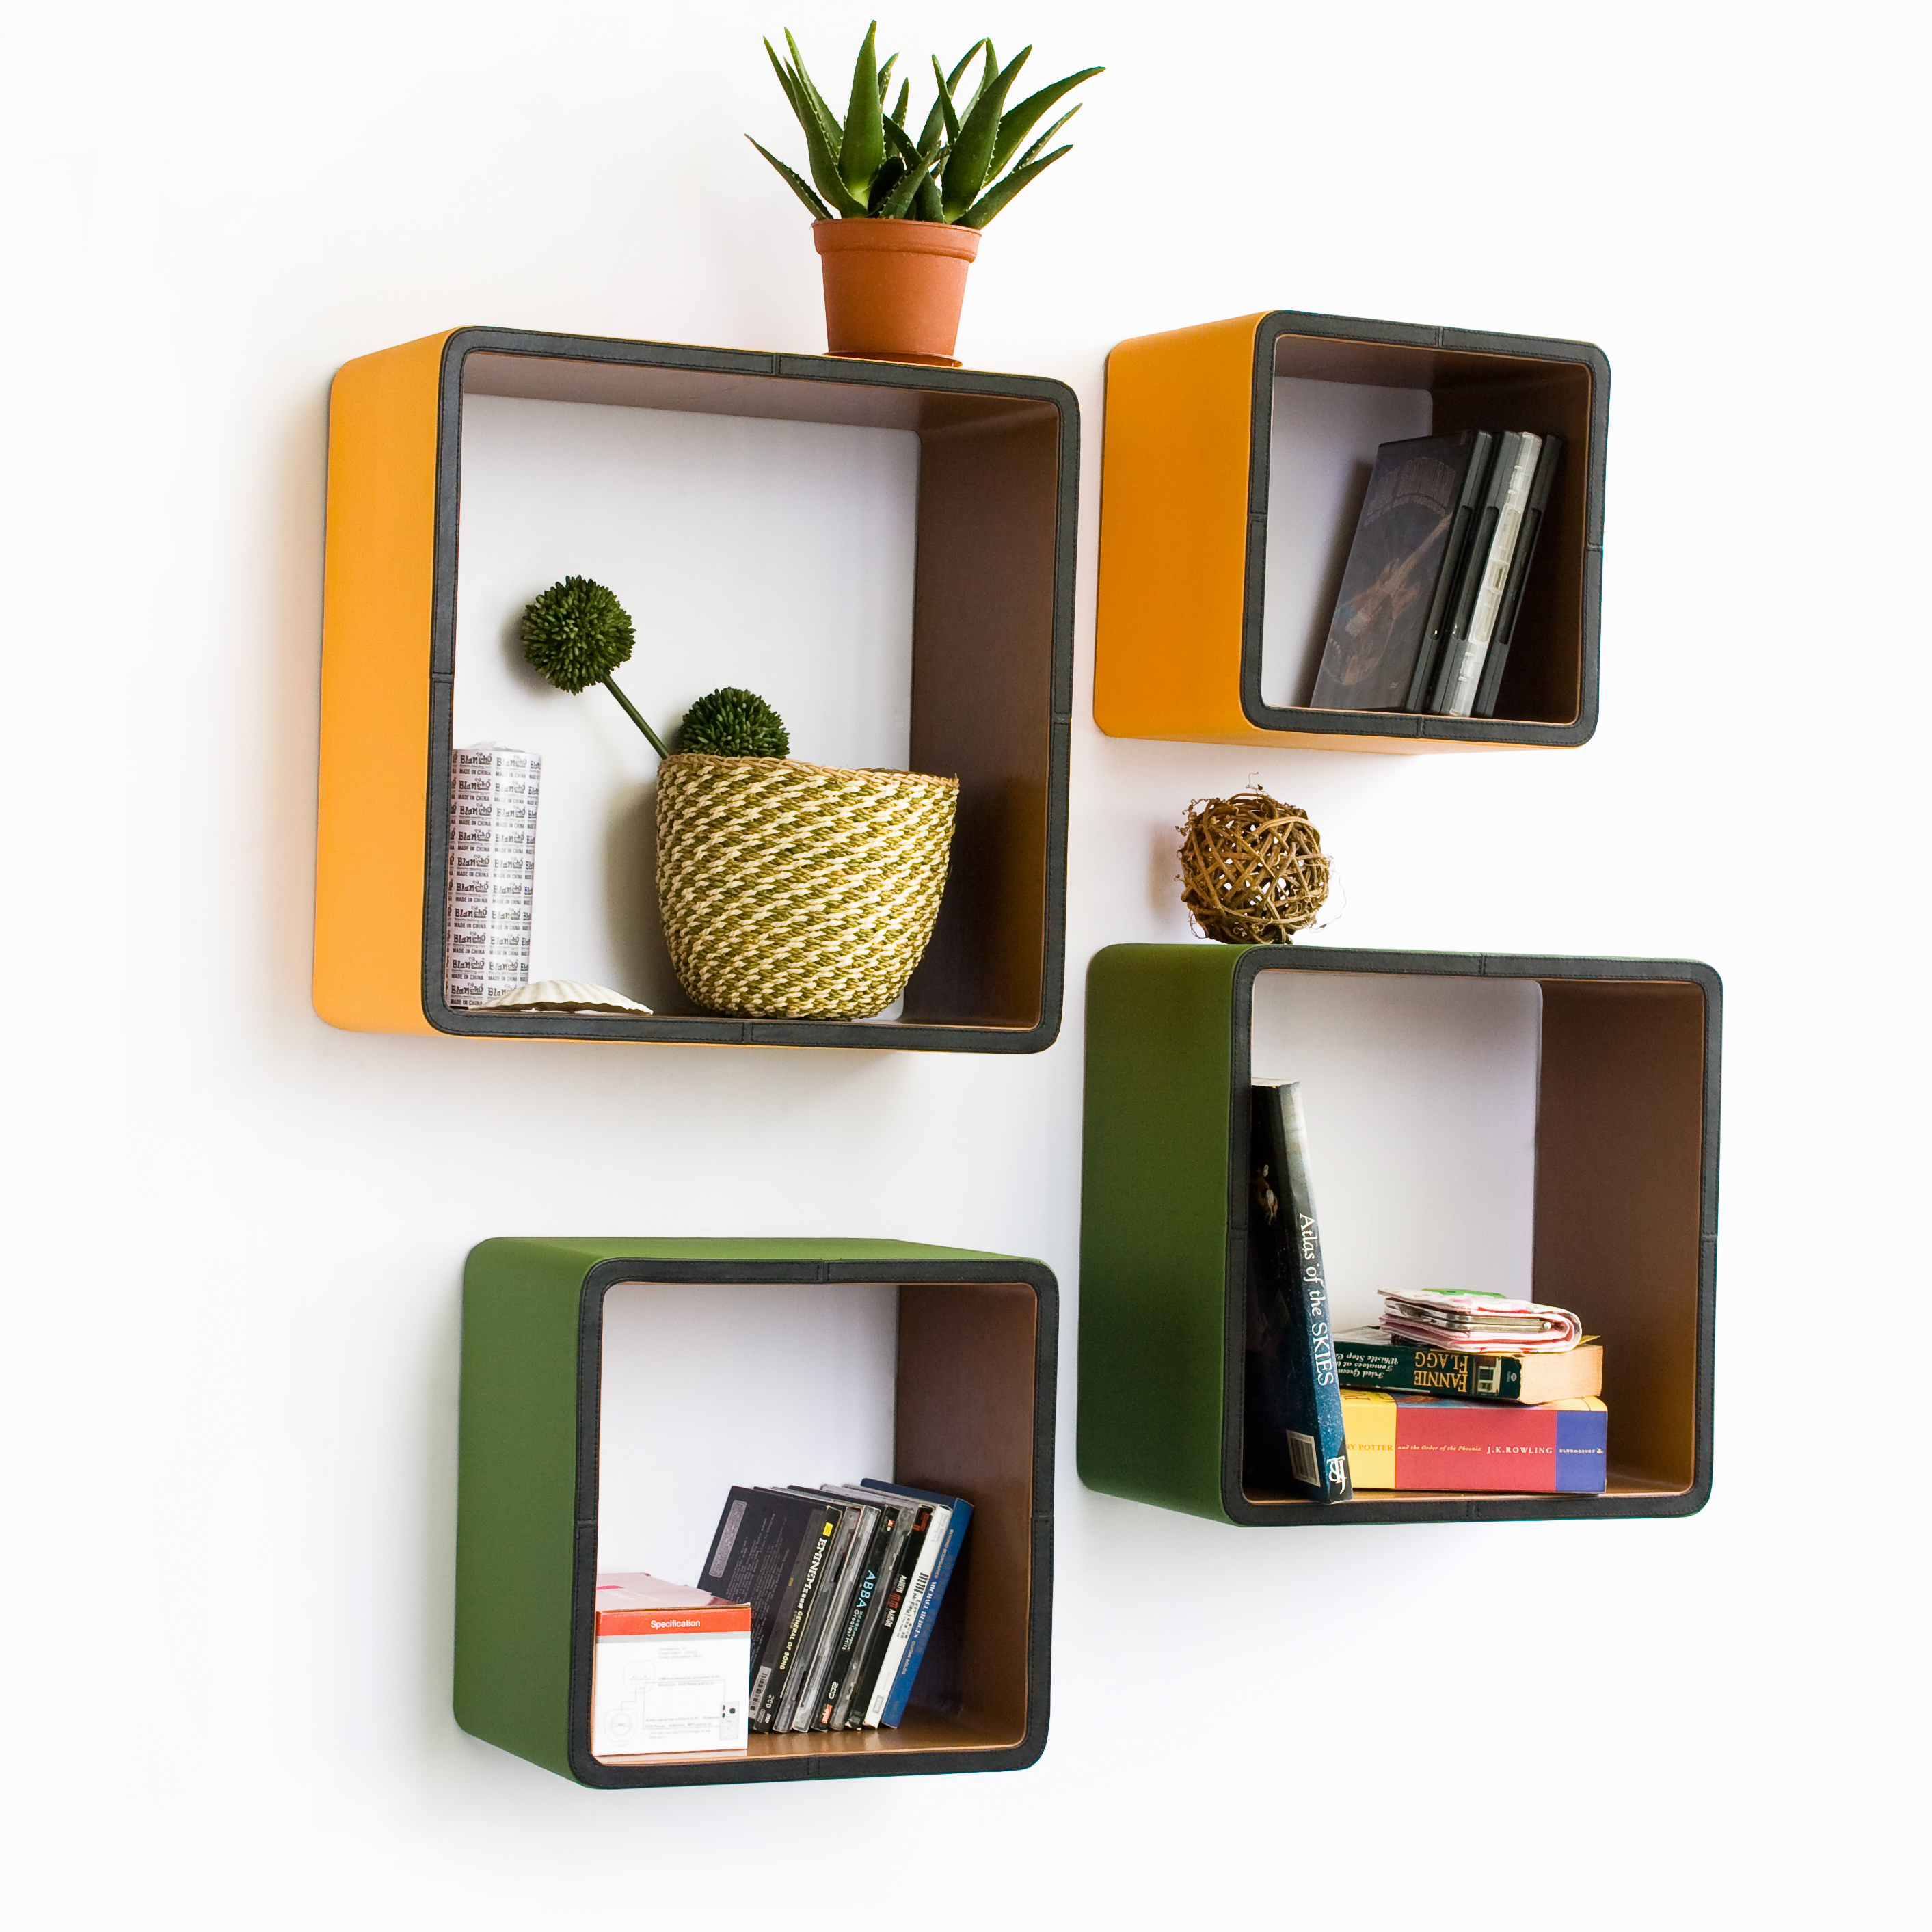 Vanity Bedroom Wall Shelves Of Interior Yellow And Green Cube Hanging